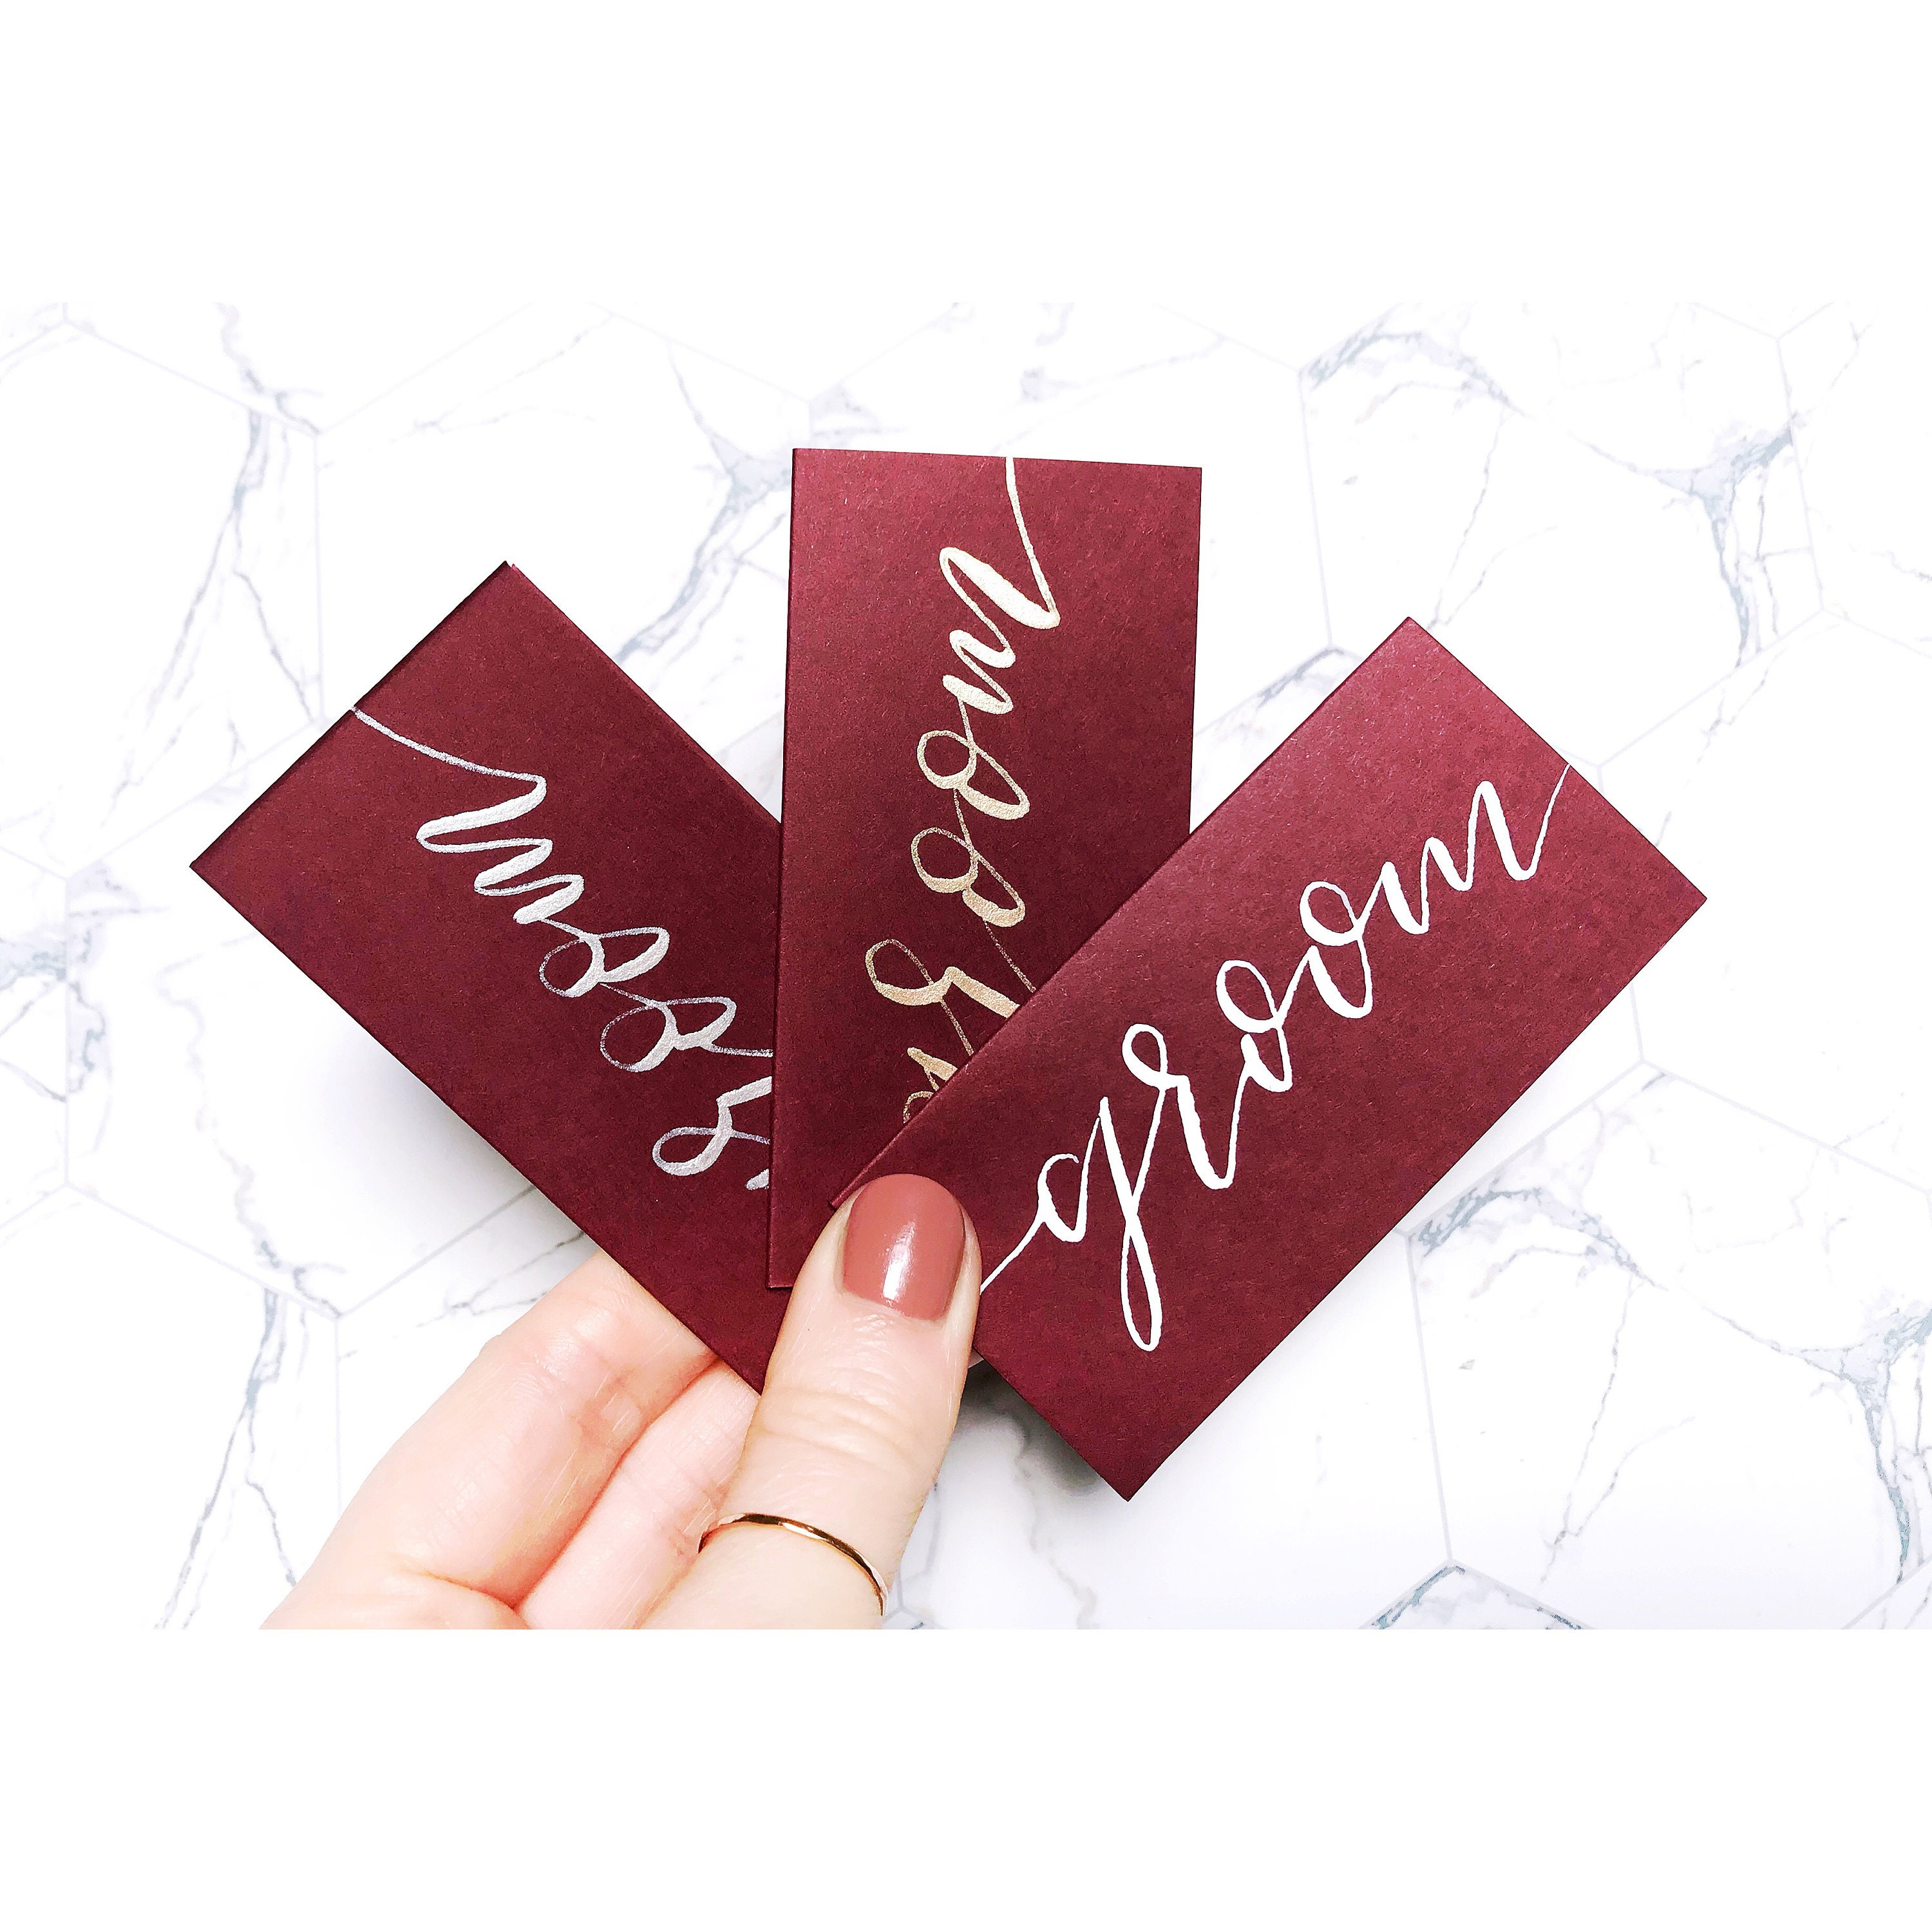 Burgundy name cards wedding stationery place cards table